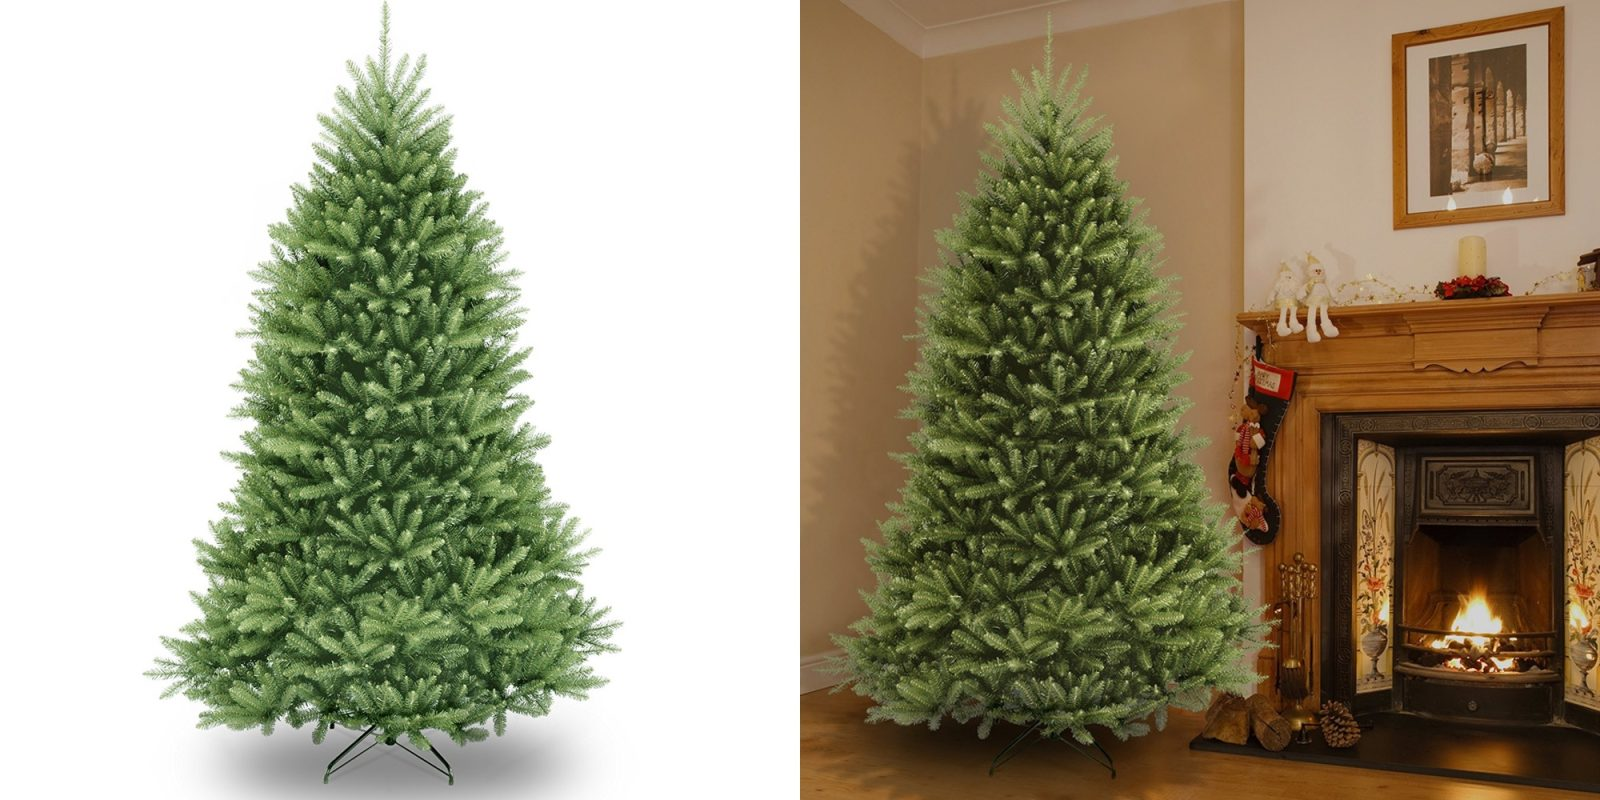 Dunhill Fir Christmas Tree.Save On An Artificial Christmas Tree From Amazon 7 5 Ft